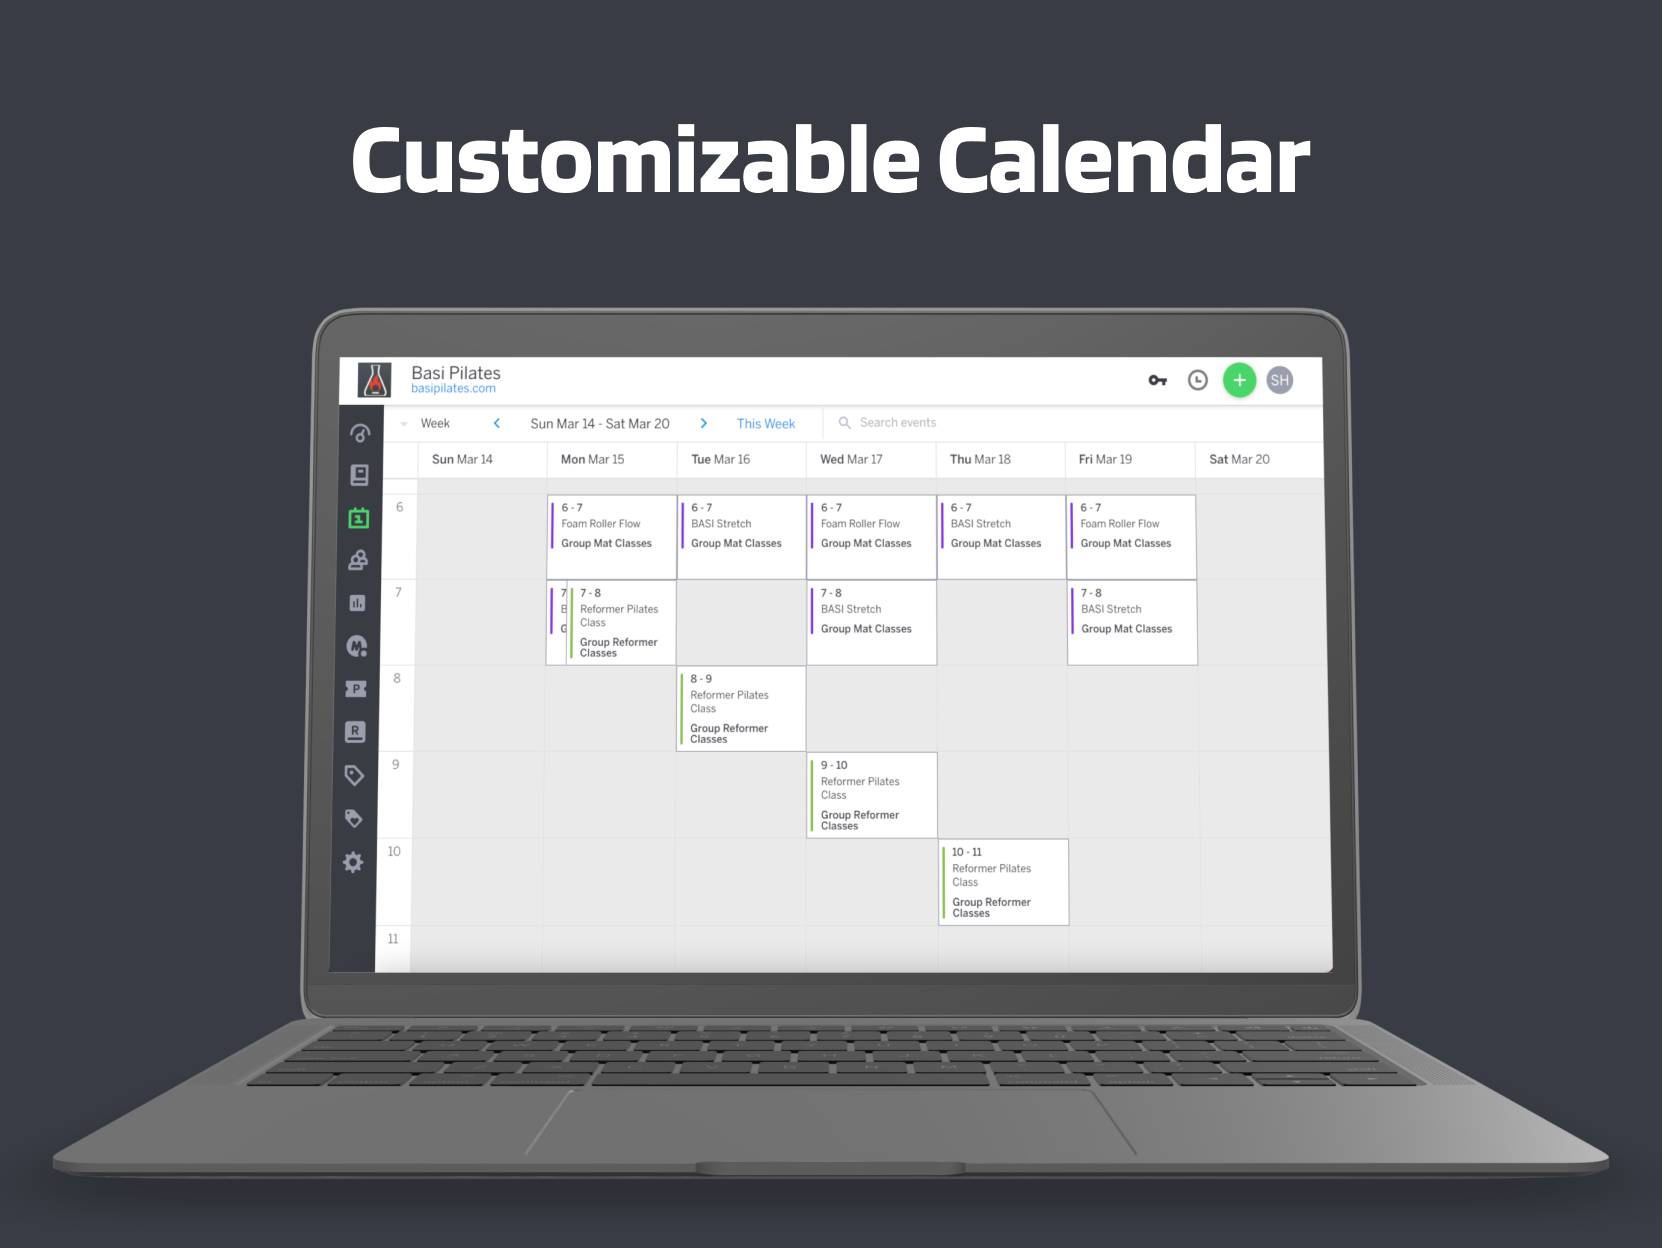 Customizable calendar acts as your central hub, giving your staff one place to manage scheduling and availability, check-in clients, view upcoming session details, and transact.